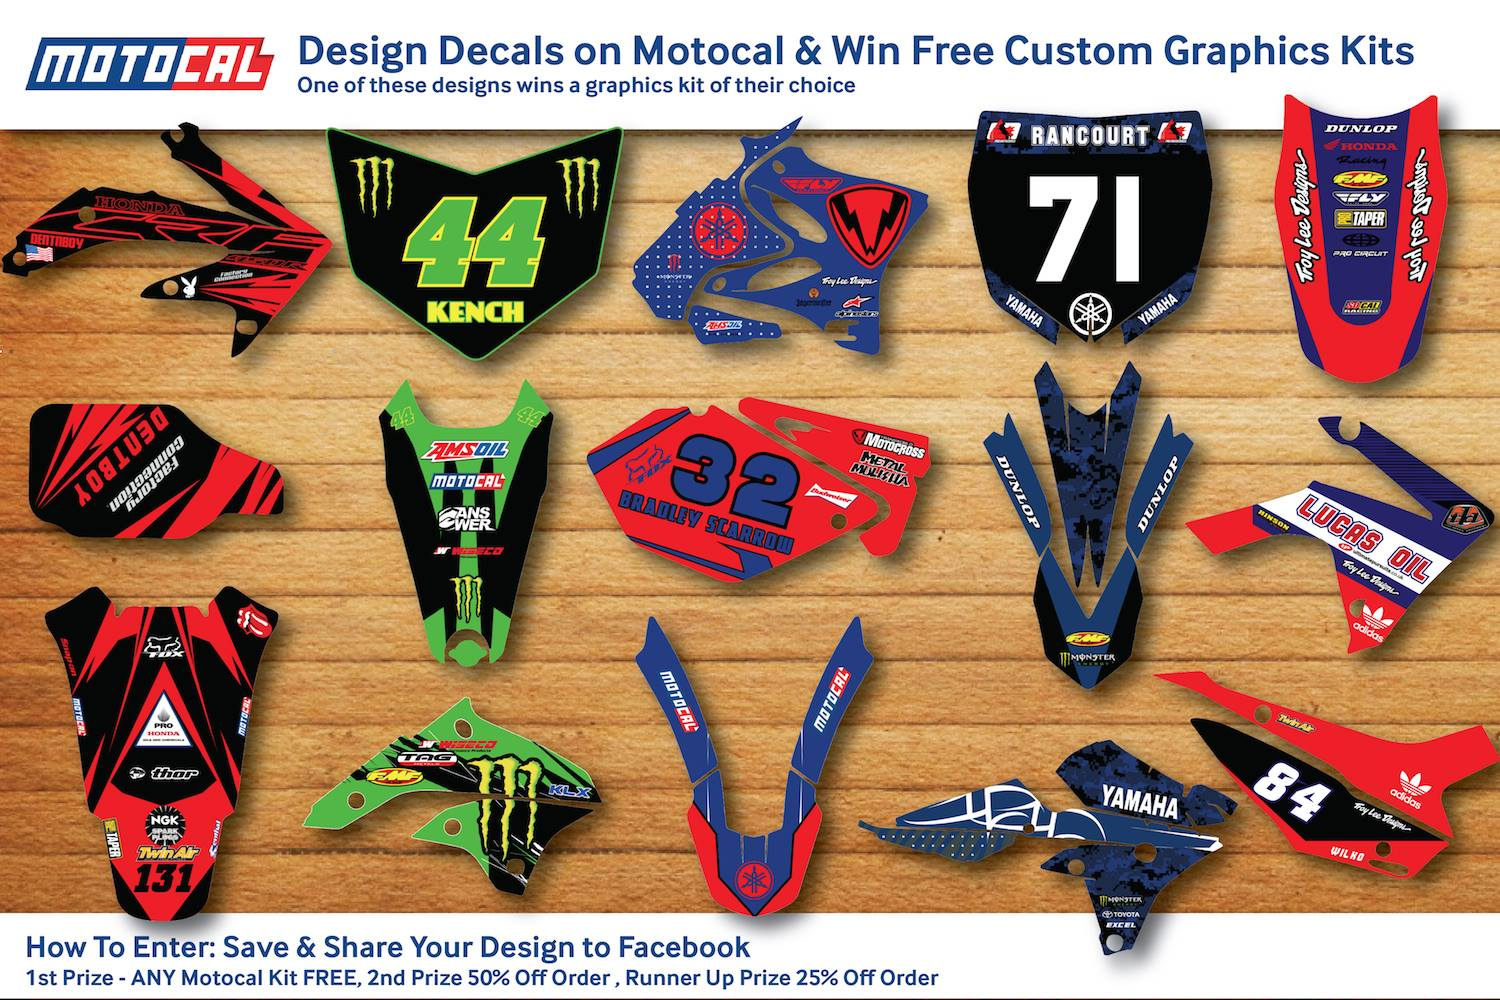 Motocal Shared Design Competition | Motocal - Motor Racing